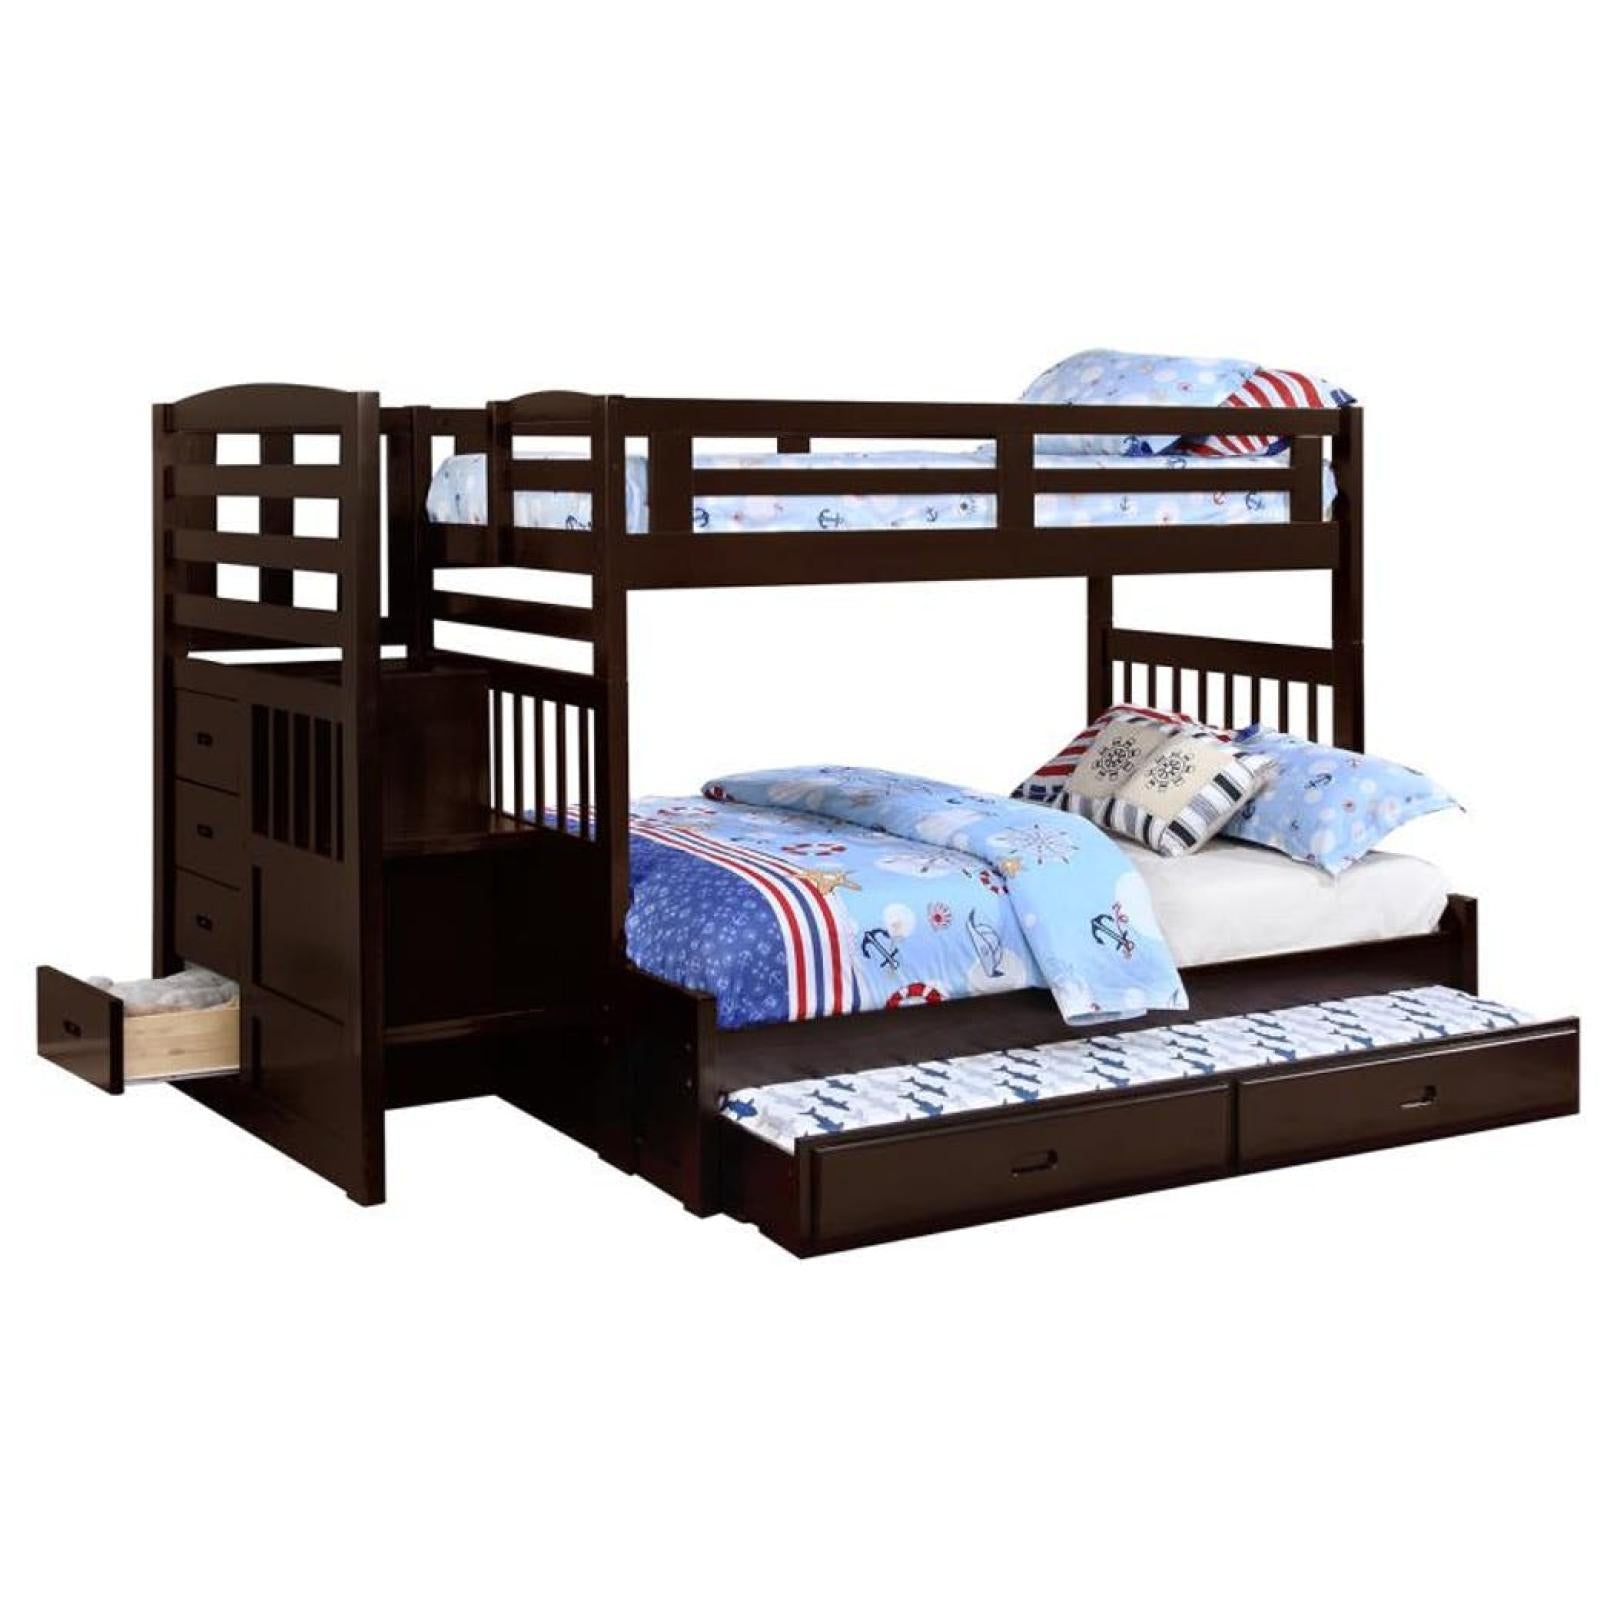 Dublin Twin Full Bunk Bed With Staircase Trundle Adams Furniture